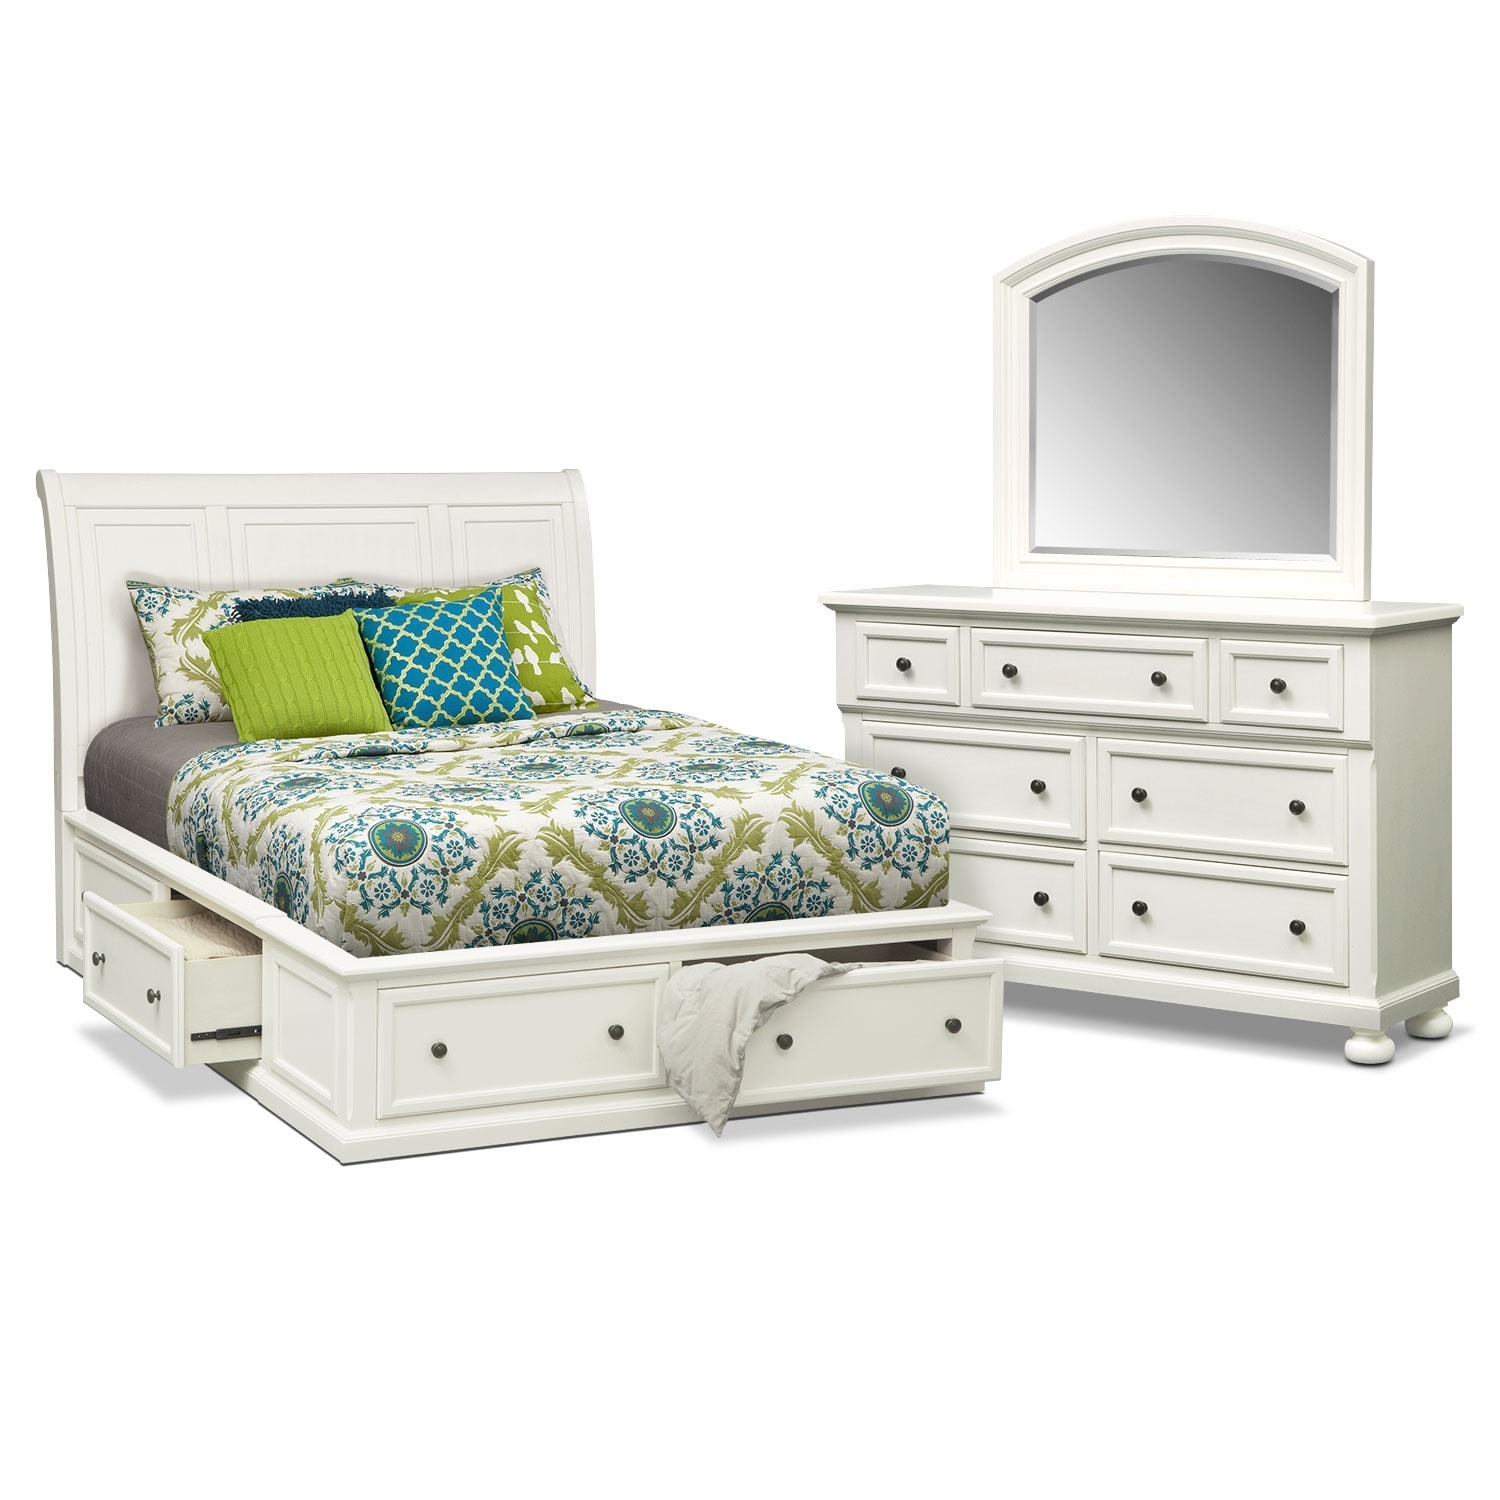 Hanover 5-Piece Queen Storage Bedroom Set - White ...